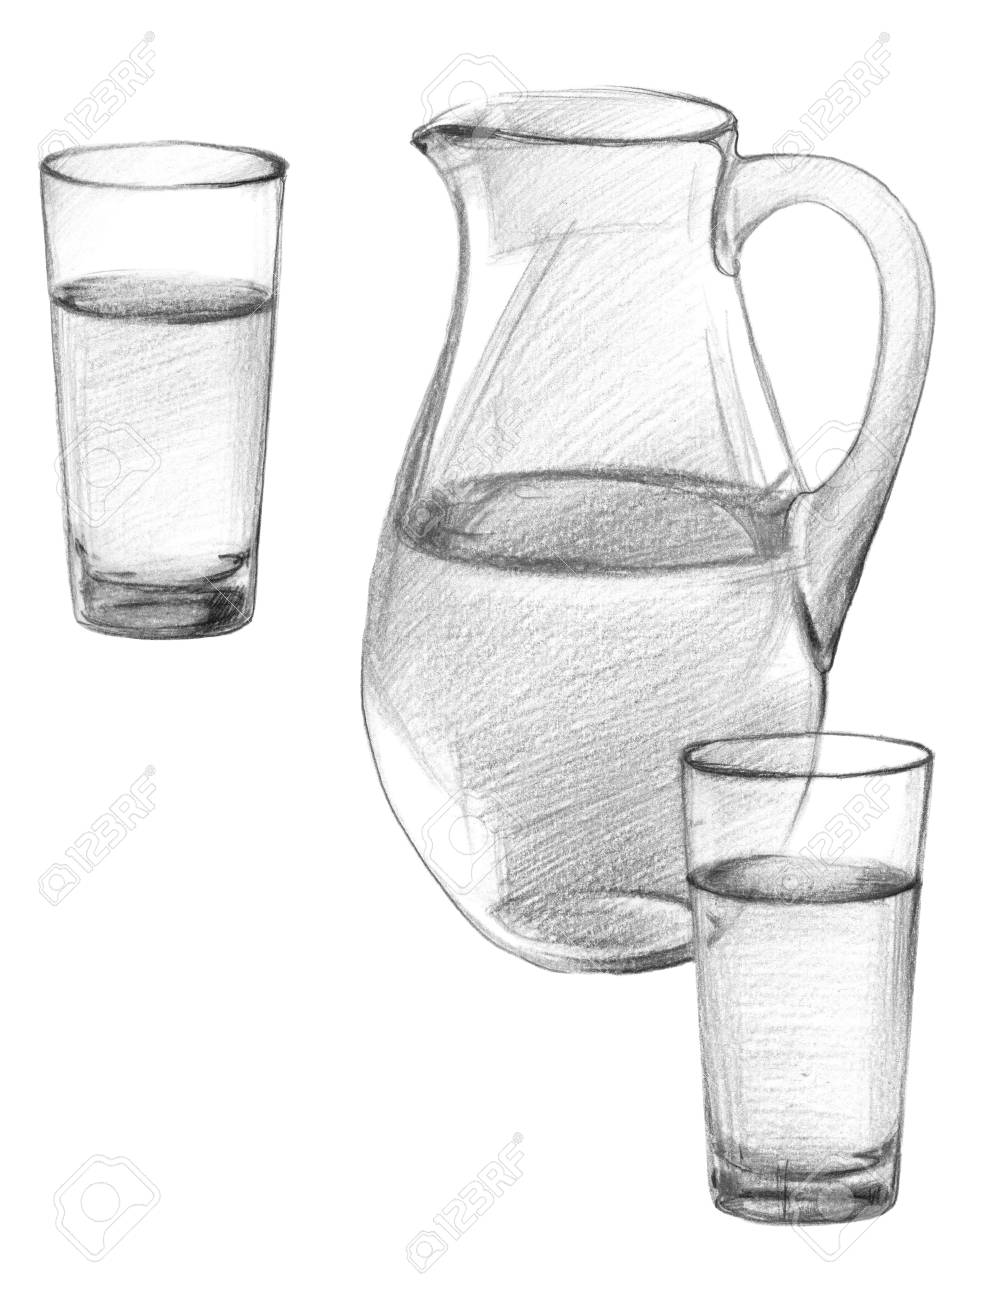 An image of a glass jug and two glasses of drinking water graphite